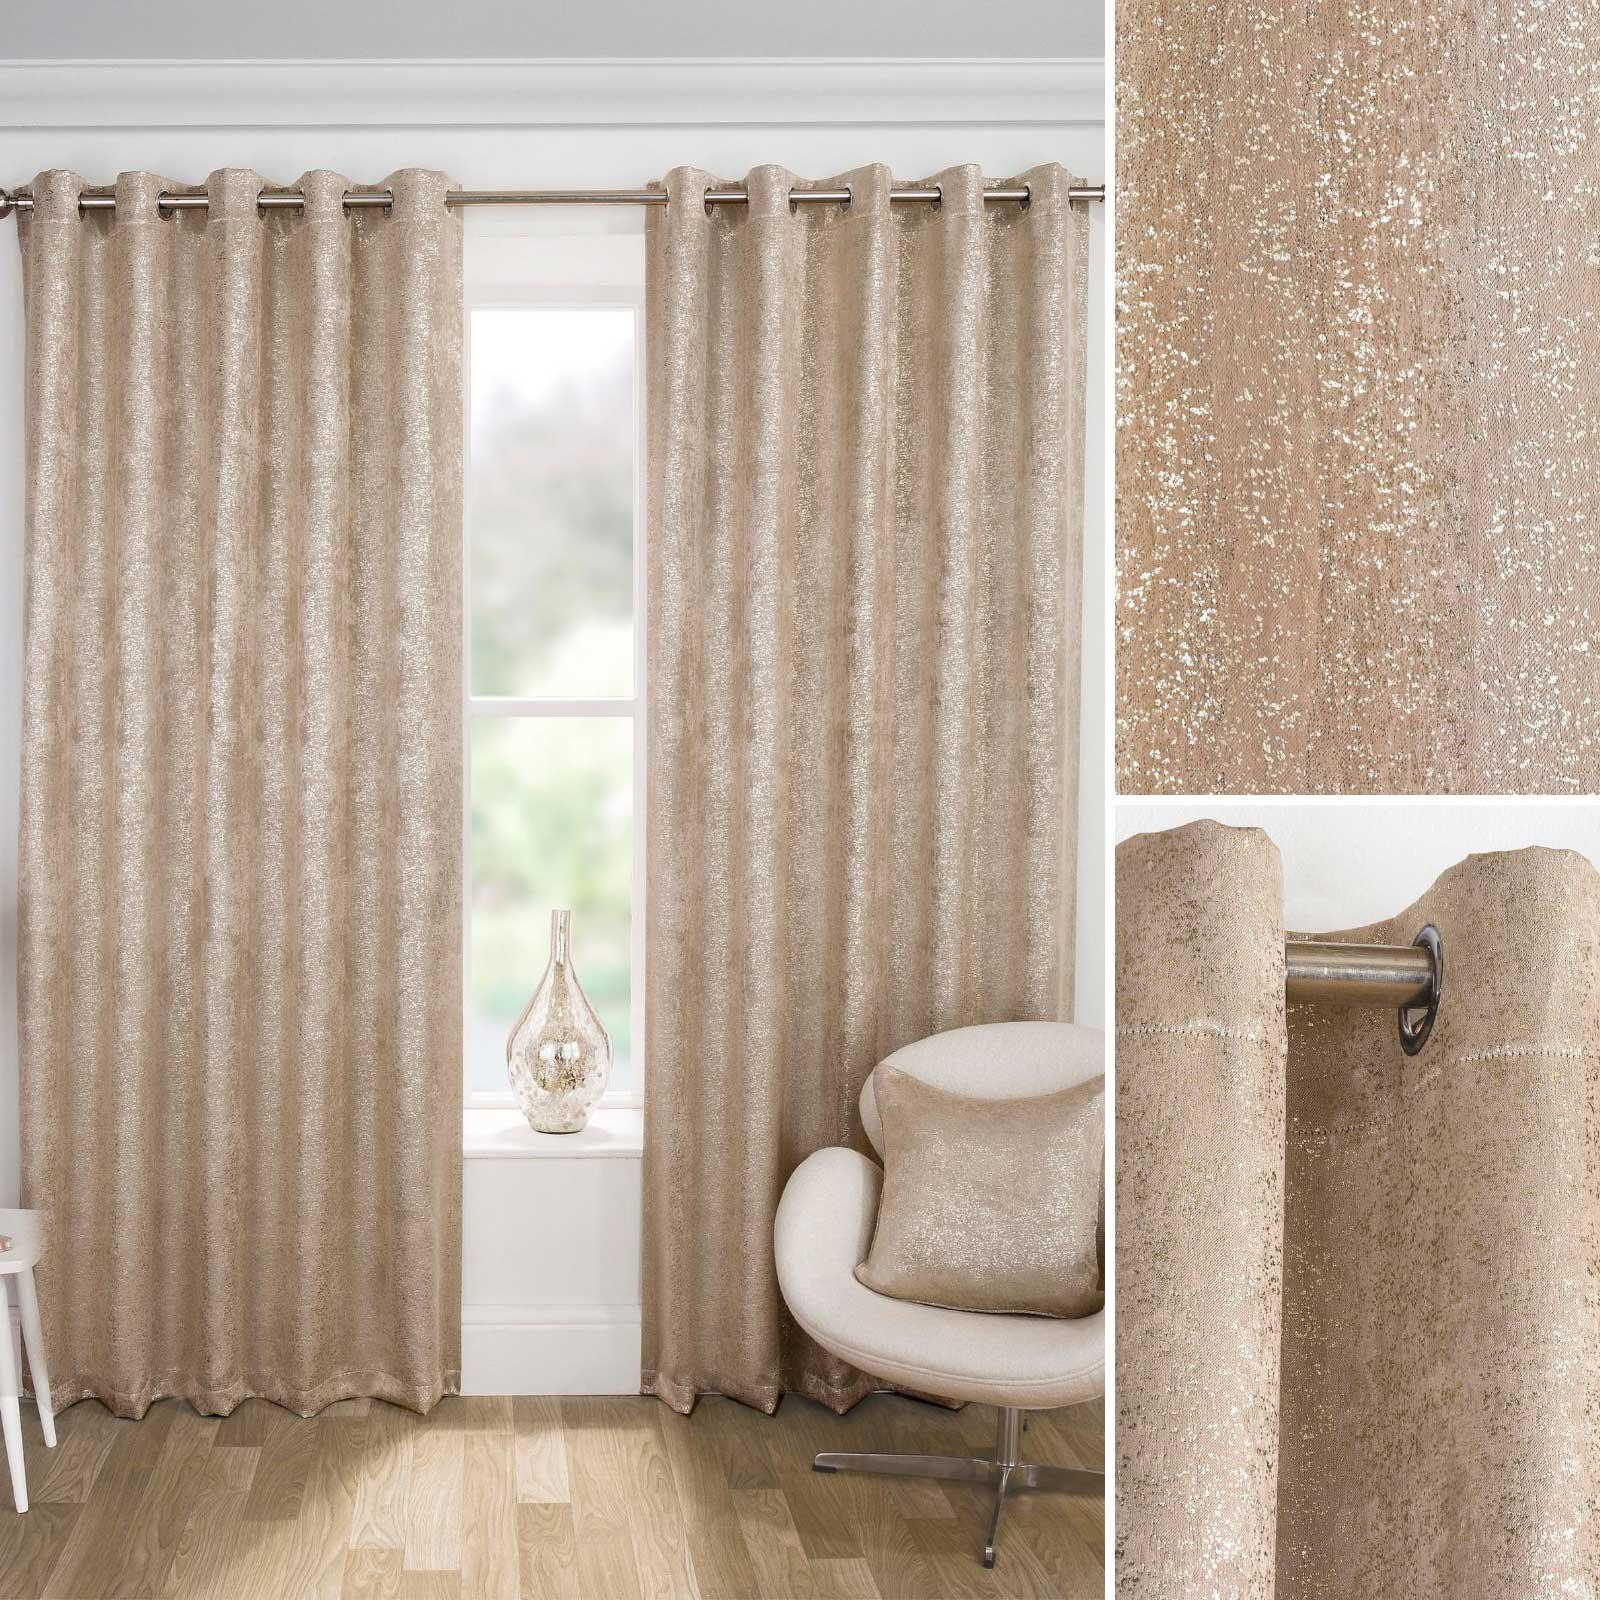 Gold Eyelet Curtains Halo Thermal Blackout Shimmer Sparkle RingTop Curtain Panel